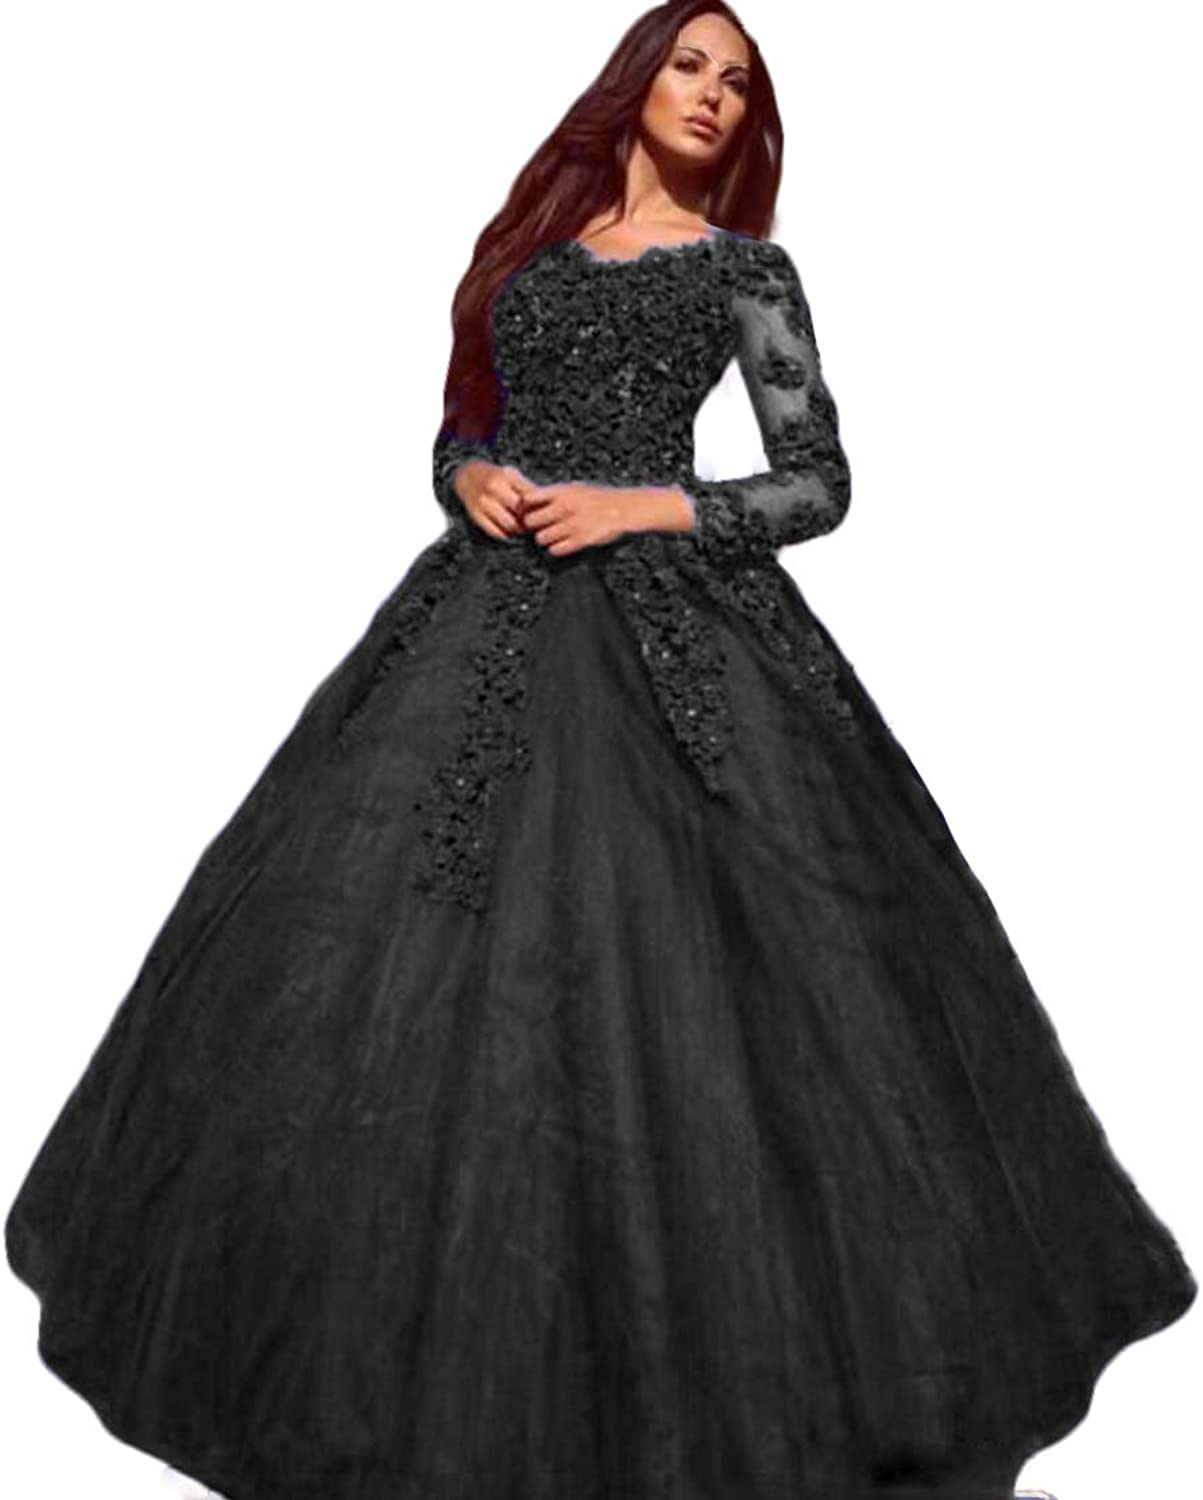 WZW Off Shoulder Prom Quinceanera Dress Plus Size Lace Applique Long Sleeve Evening Gowns